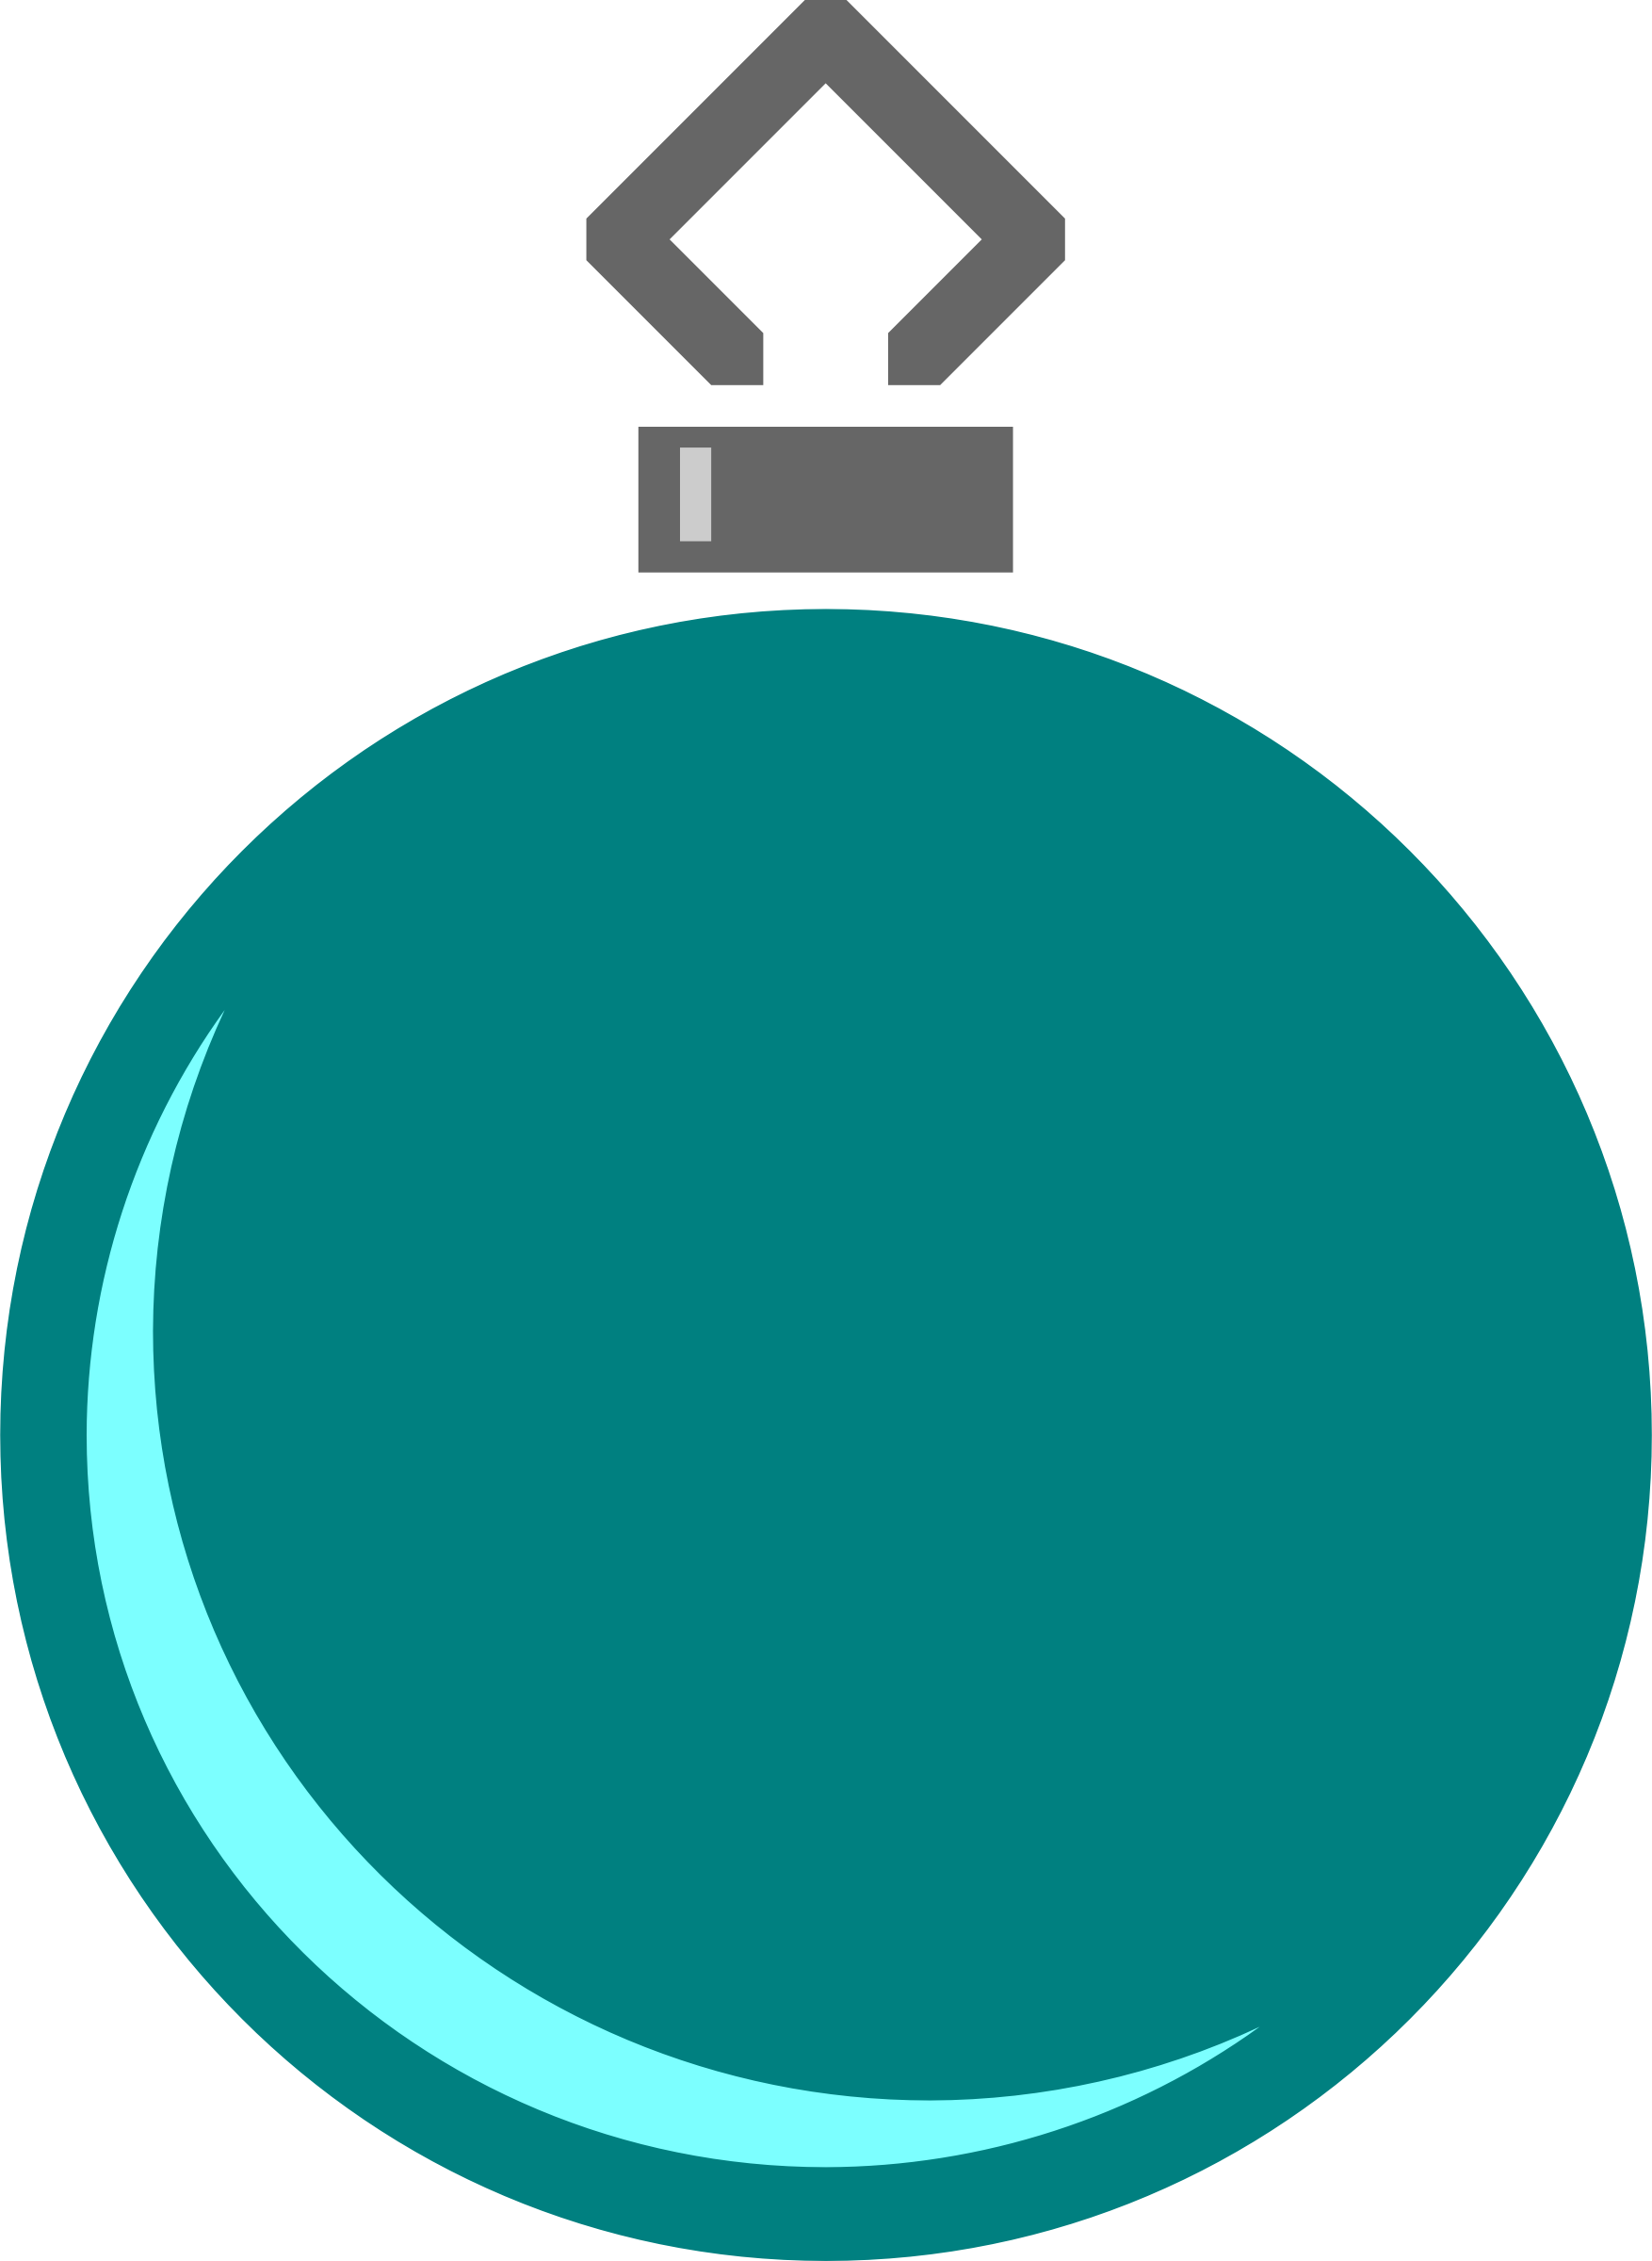 Simple tree bauble 1 (colour) by Firkin